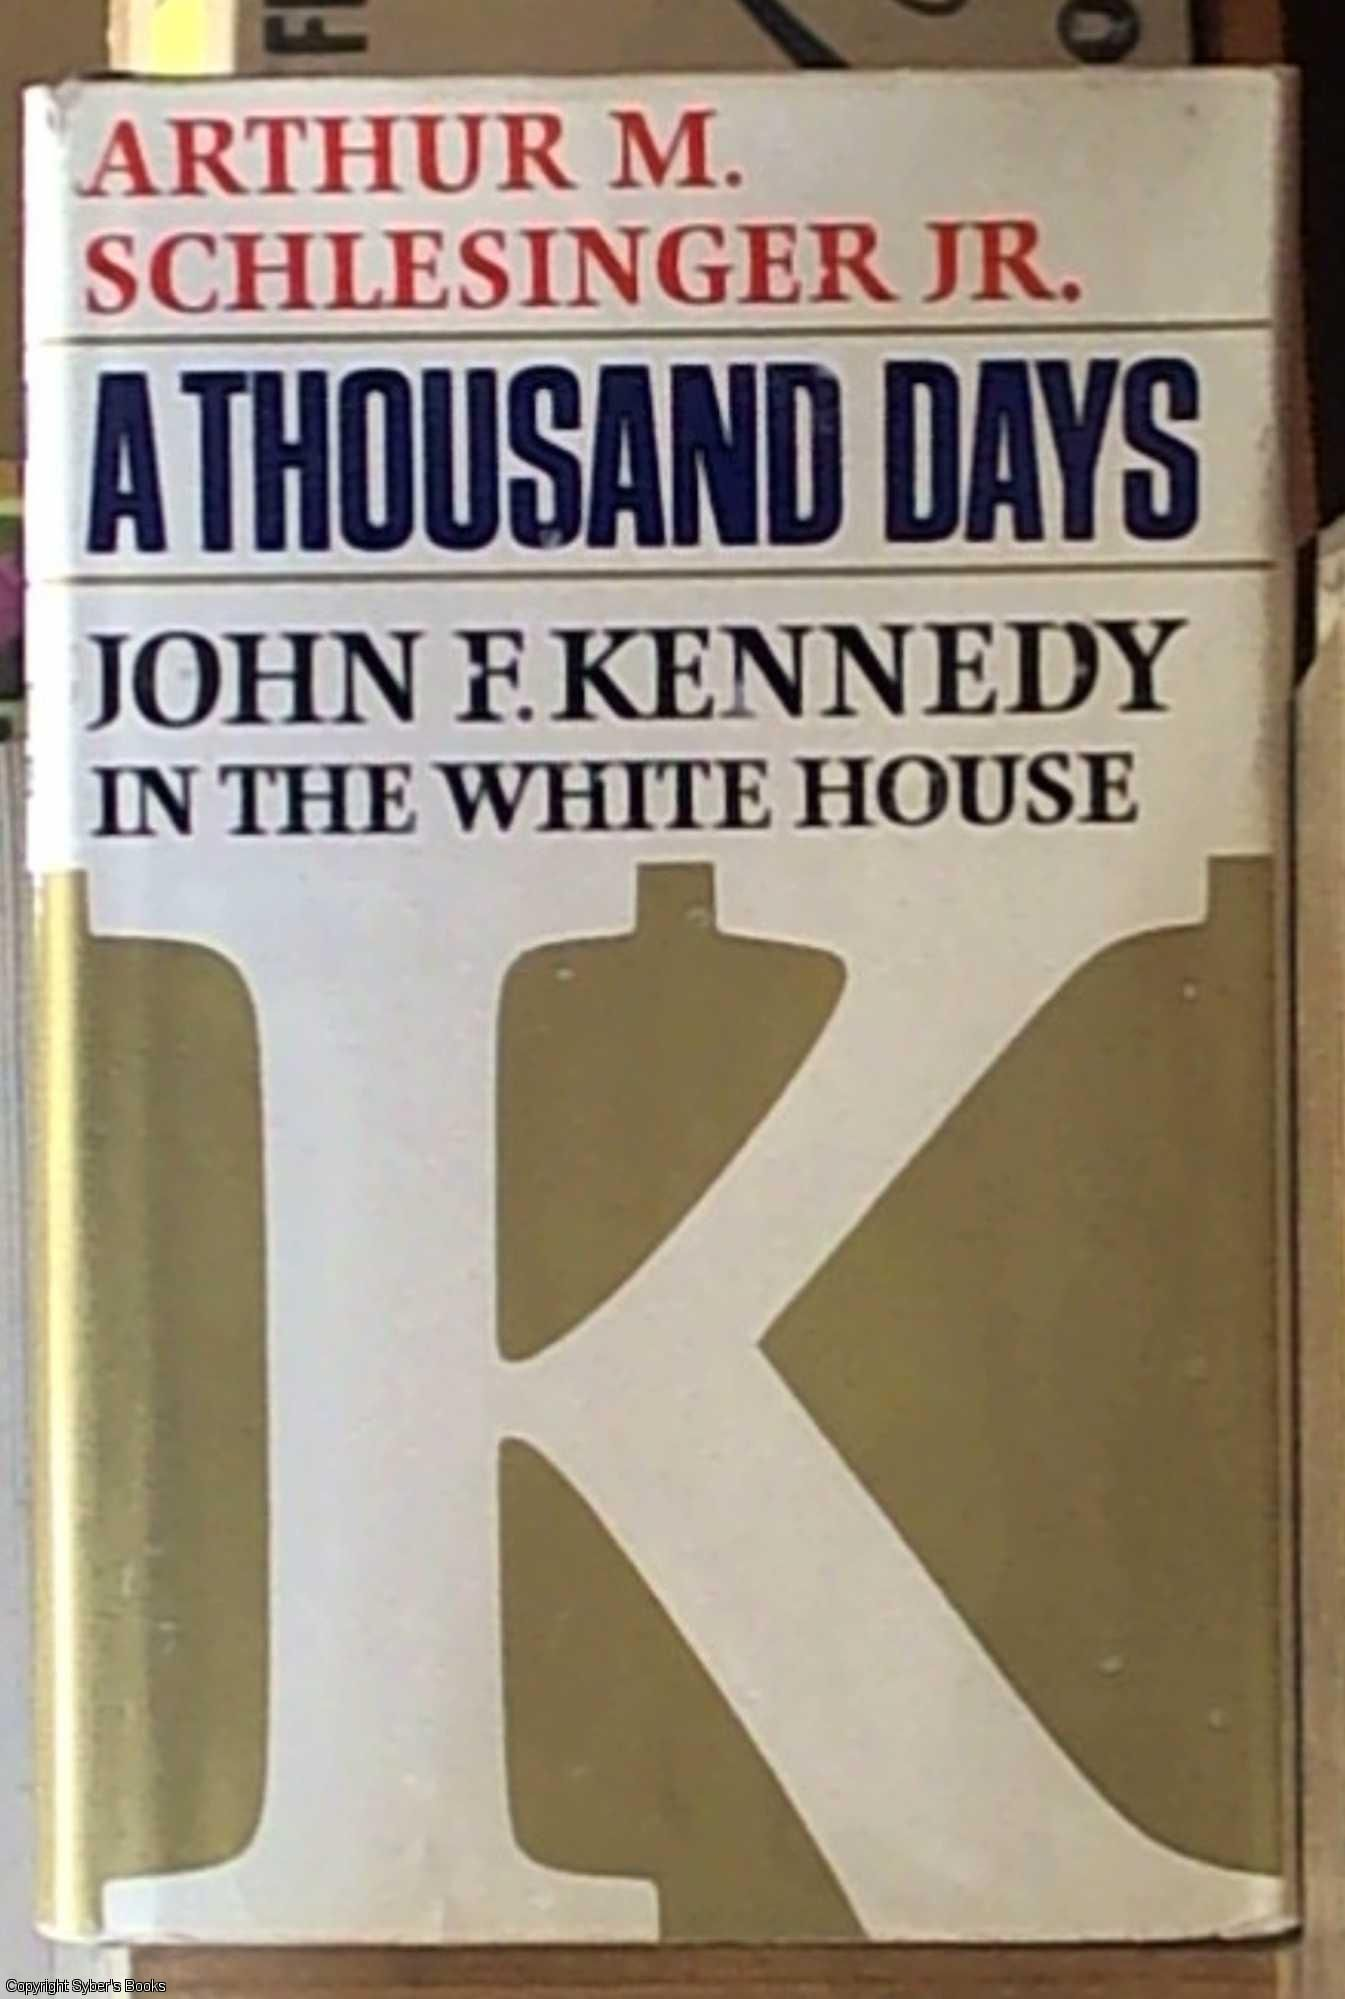 an analysis of a thousand days by john f kennedy The ma thesis was intended as a comparative leadership analysis of president kennedy jr's 'a thousand days of john f kennedy' and john.